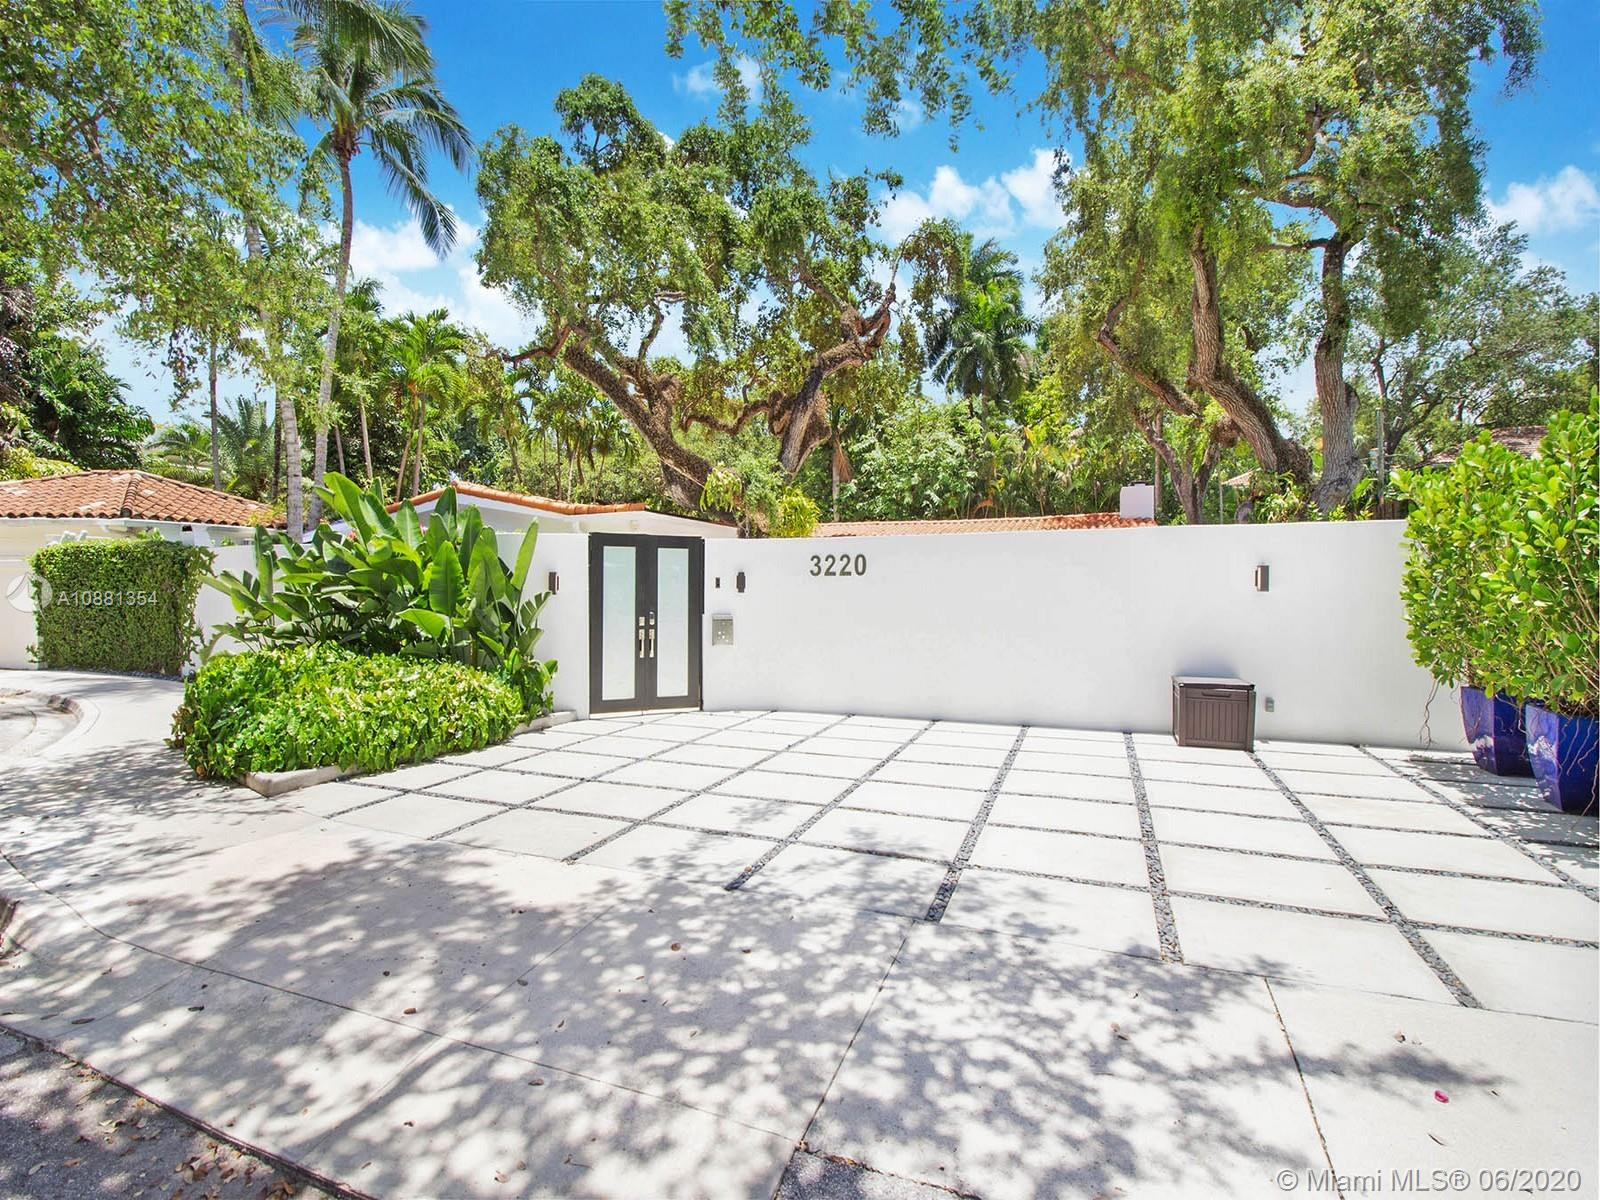 Tucked behind a private gated entrance this North Coconut Grove renovated residence graces a cul de sac with the best urban access in Miami. Stunning banks of impact glass sliders open to the newly refinished pool area and multiple exterior living areas. Handcrafted imported eat-in Italian kitchen is outfitted with Wolf and SubZero appliances, 180 bottle wine cooler and organized built-ins. Vaulted ceilings and upgraded lighting systems encompass the newly redesigned modern masterpiece filled with custom finishes and contemporary features. White Iceberg 48x48 marble and hardwood flooring flow throughout the spacious one-story home with a flexible floor plan. Main house 3/3.5. Separate 1/1 guest casita. Stroll or bike to the Village. Best walkability to schools, hip cafes and the Bay.